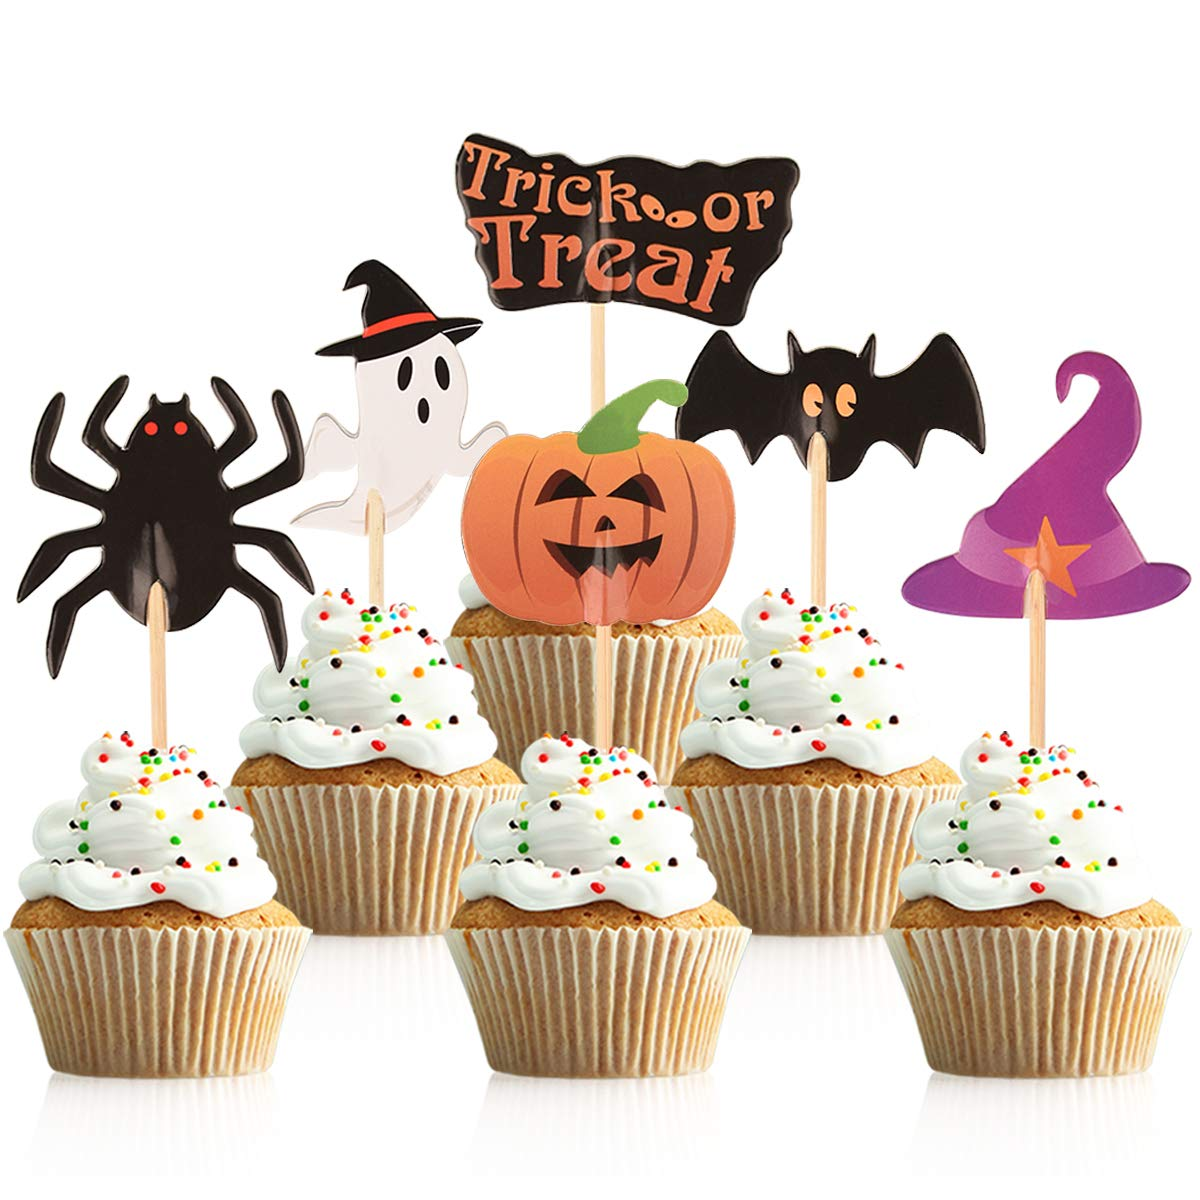 Donoter 60 Pcs Halloween Cupcake Toppers Trick or Treat Pumpkin Spider Bat Ghost Witch Hat Food Picks for Halloween Party Dessert Decorations